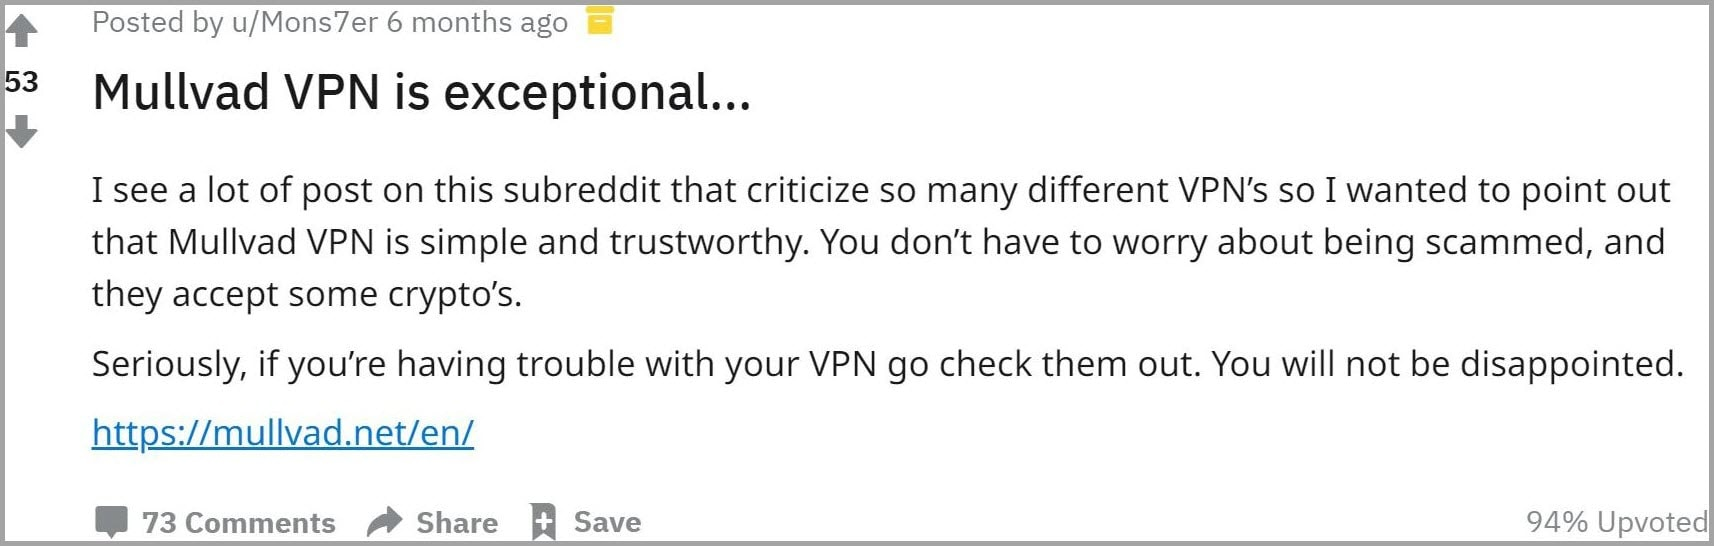 Mullvad VPN user review 1